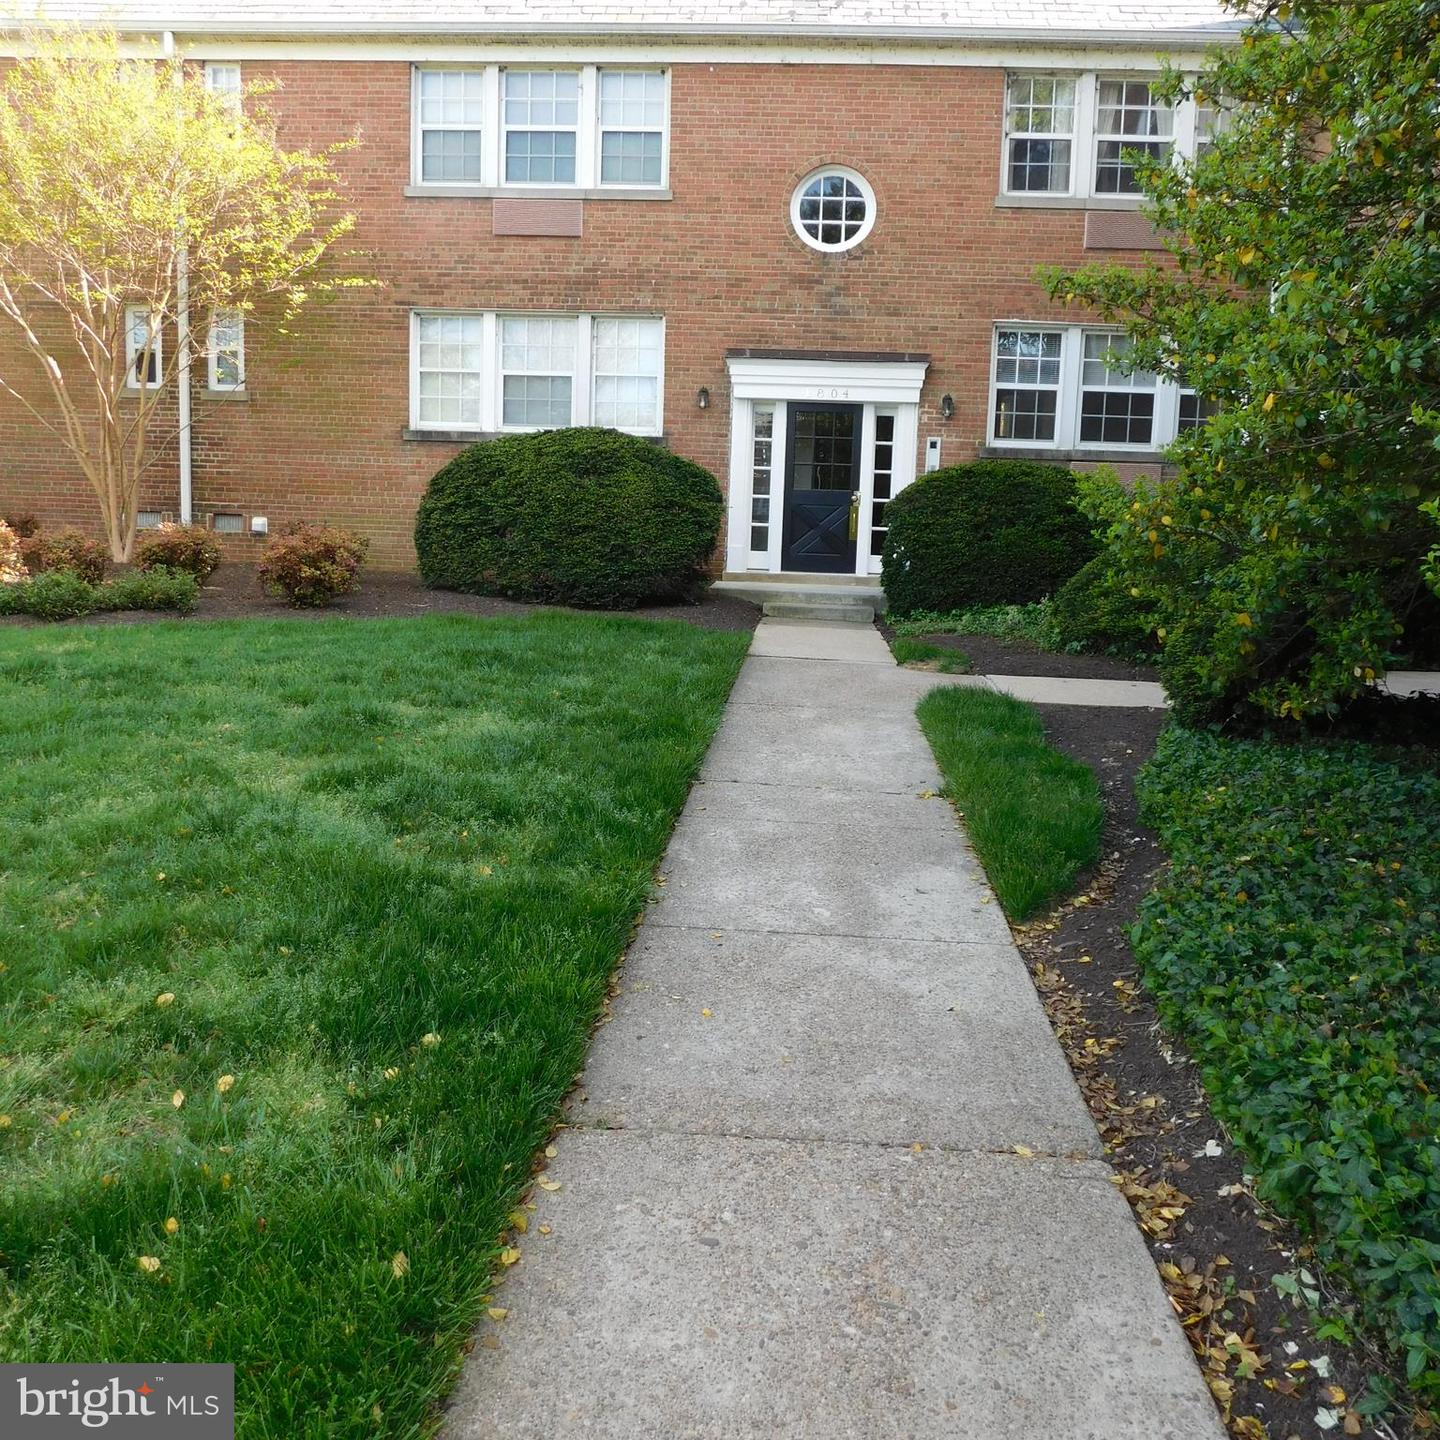 Other Residential for Rent at 1804 W Abingdon Dr #102 Alexandria, Virginia 22314 United States